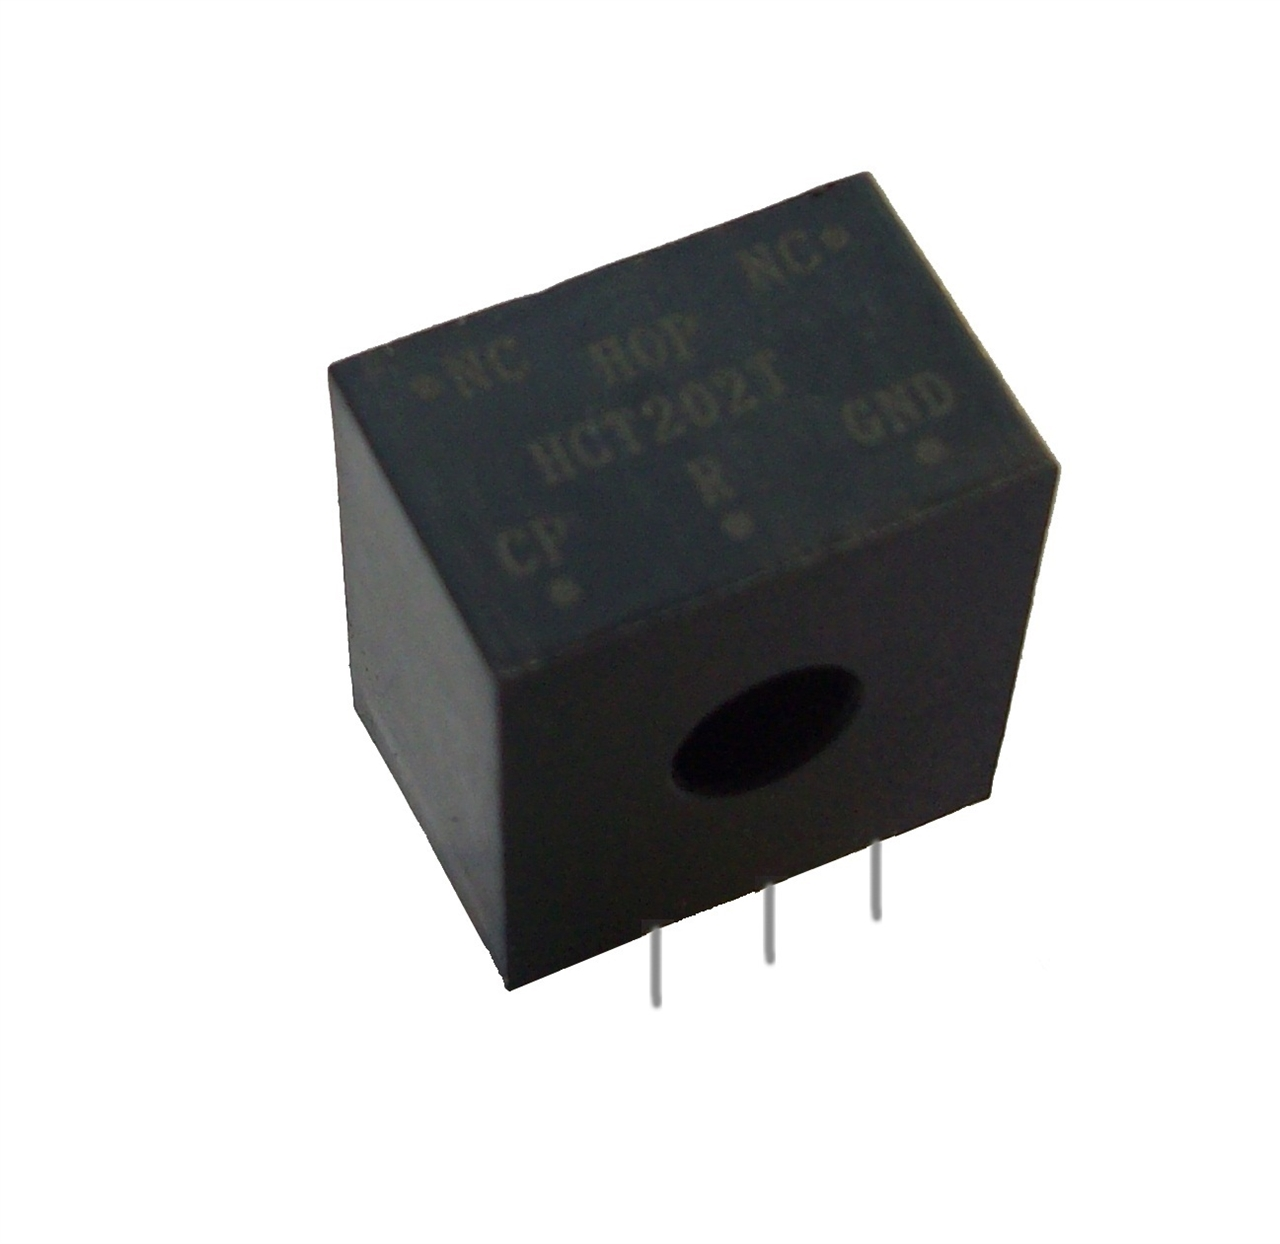 Transformer sensor module 0.1% precision ultra small precision current transformer HCT202T